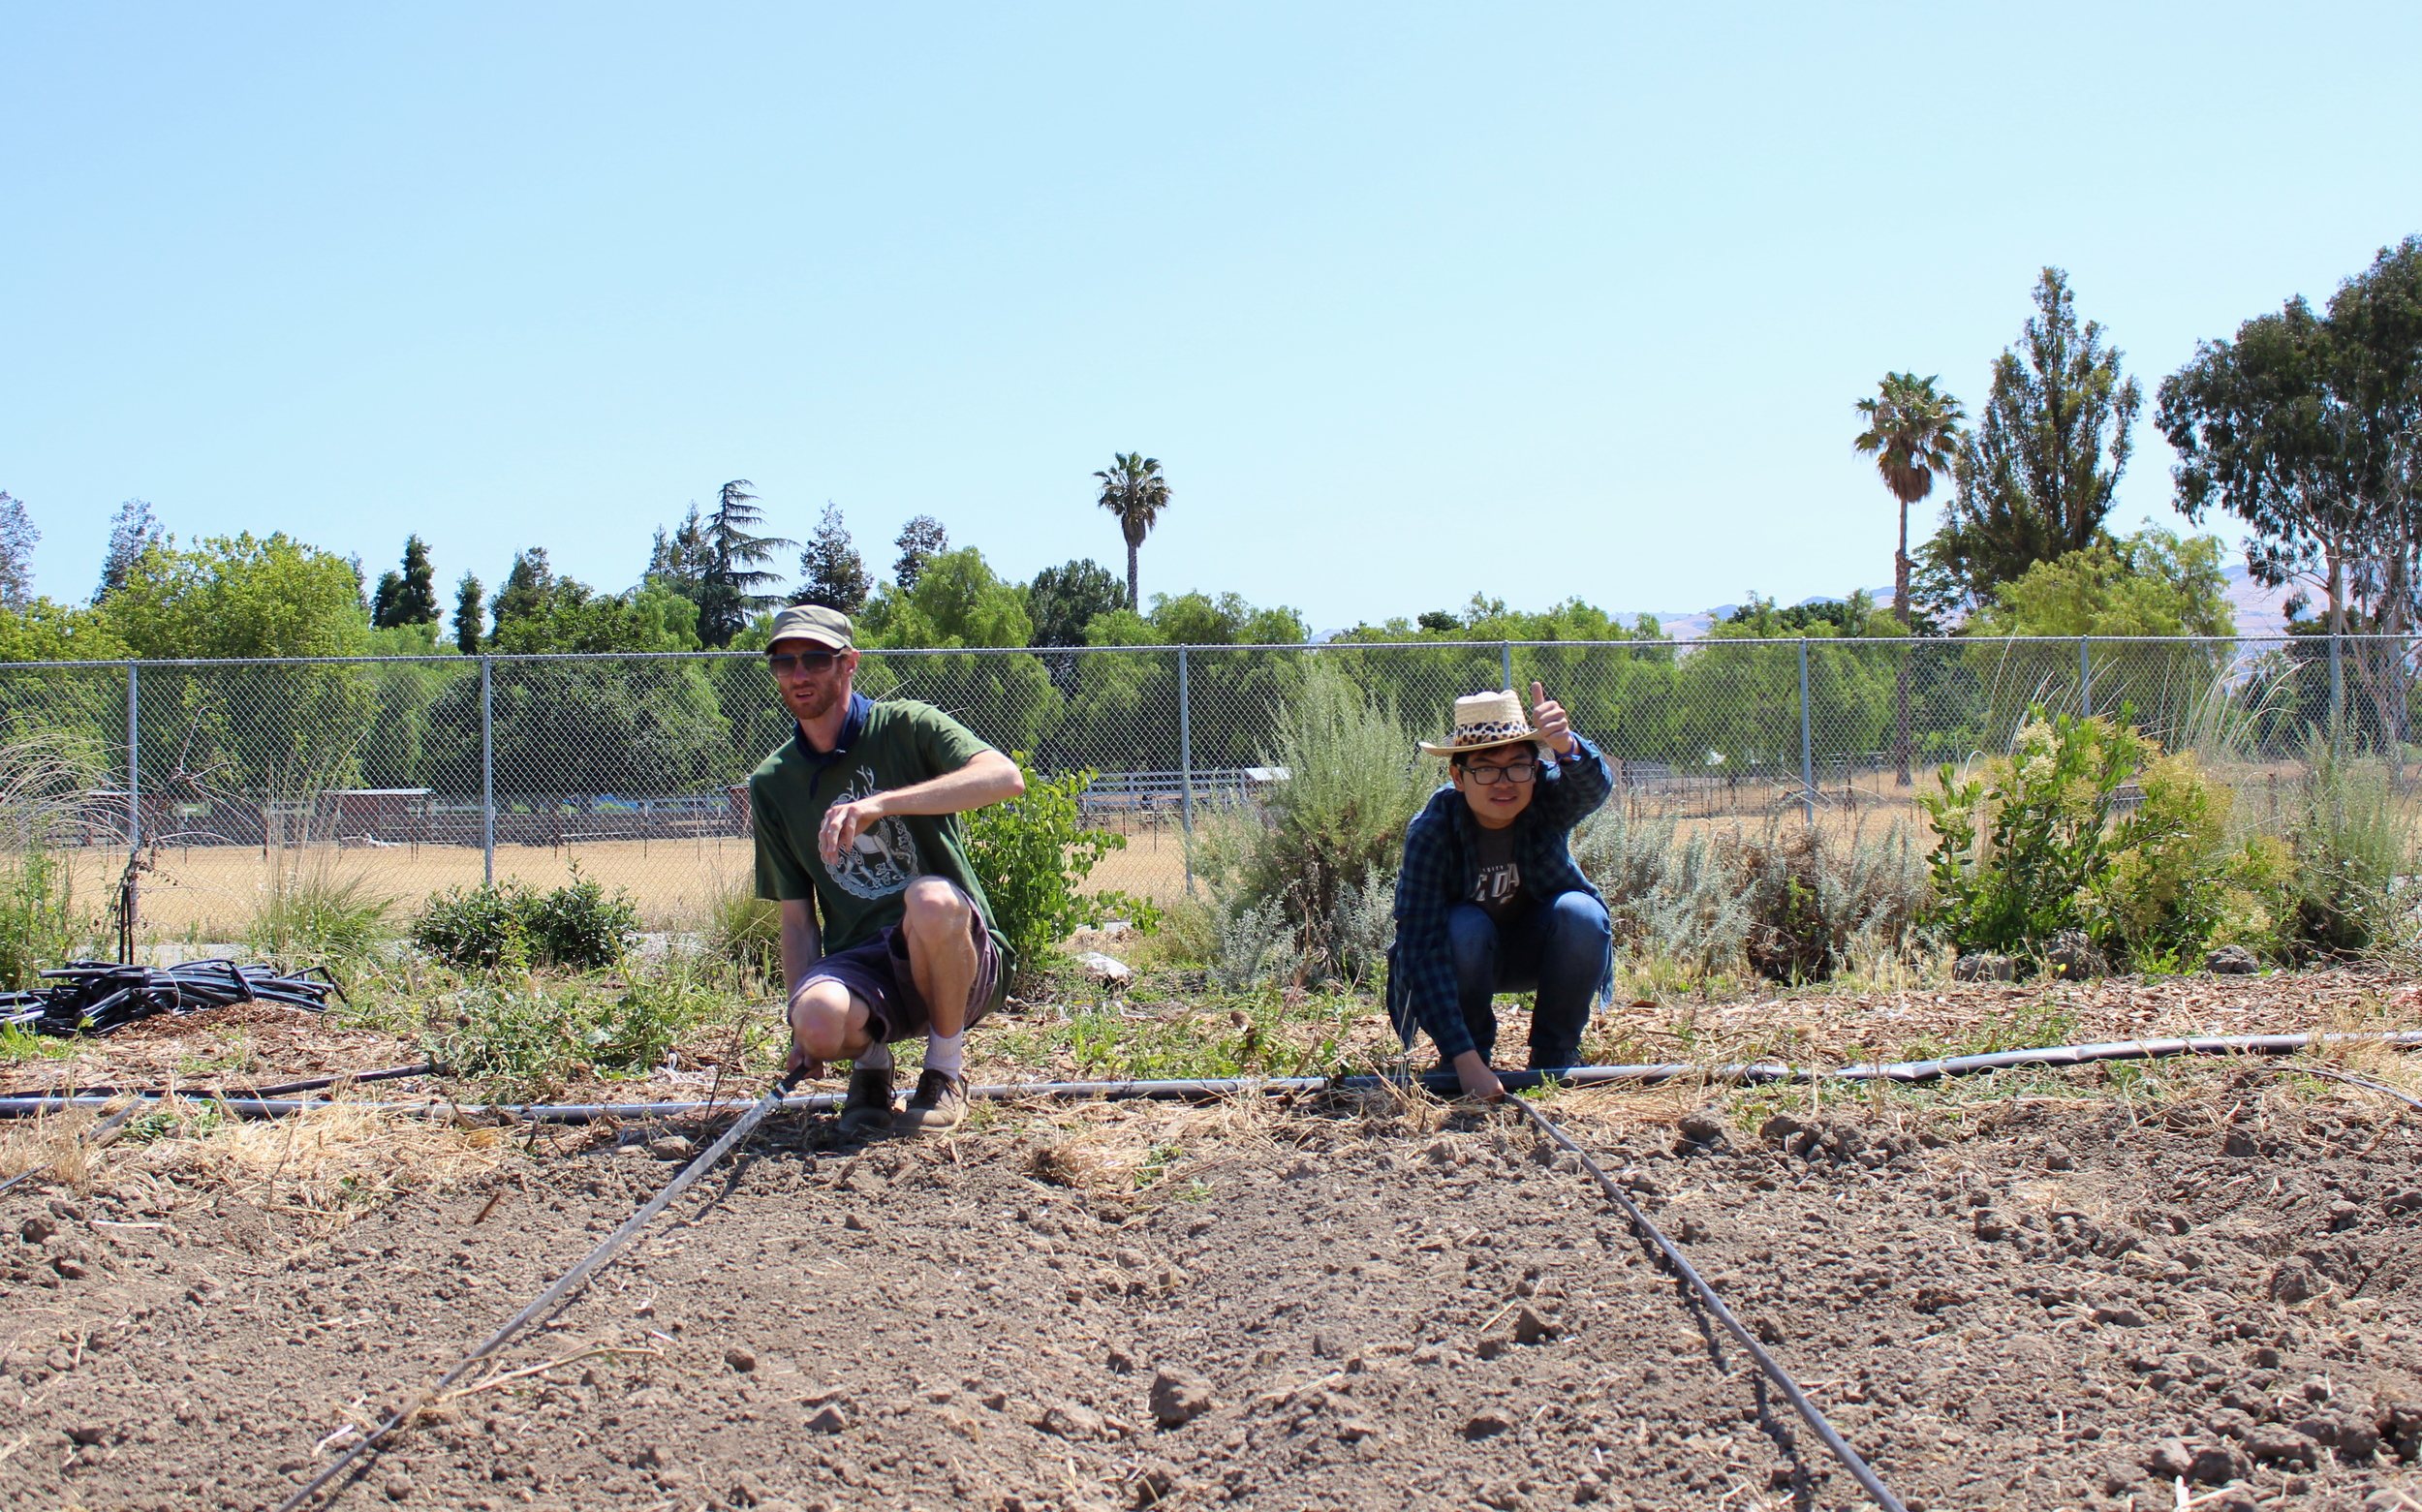 Darin and Thien help set up two new irrigation lines.